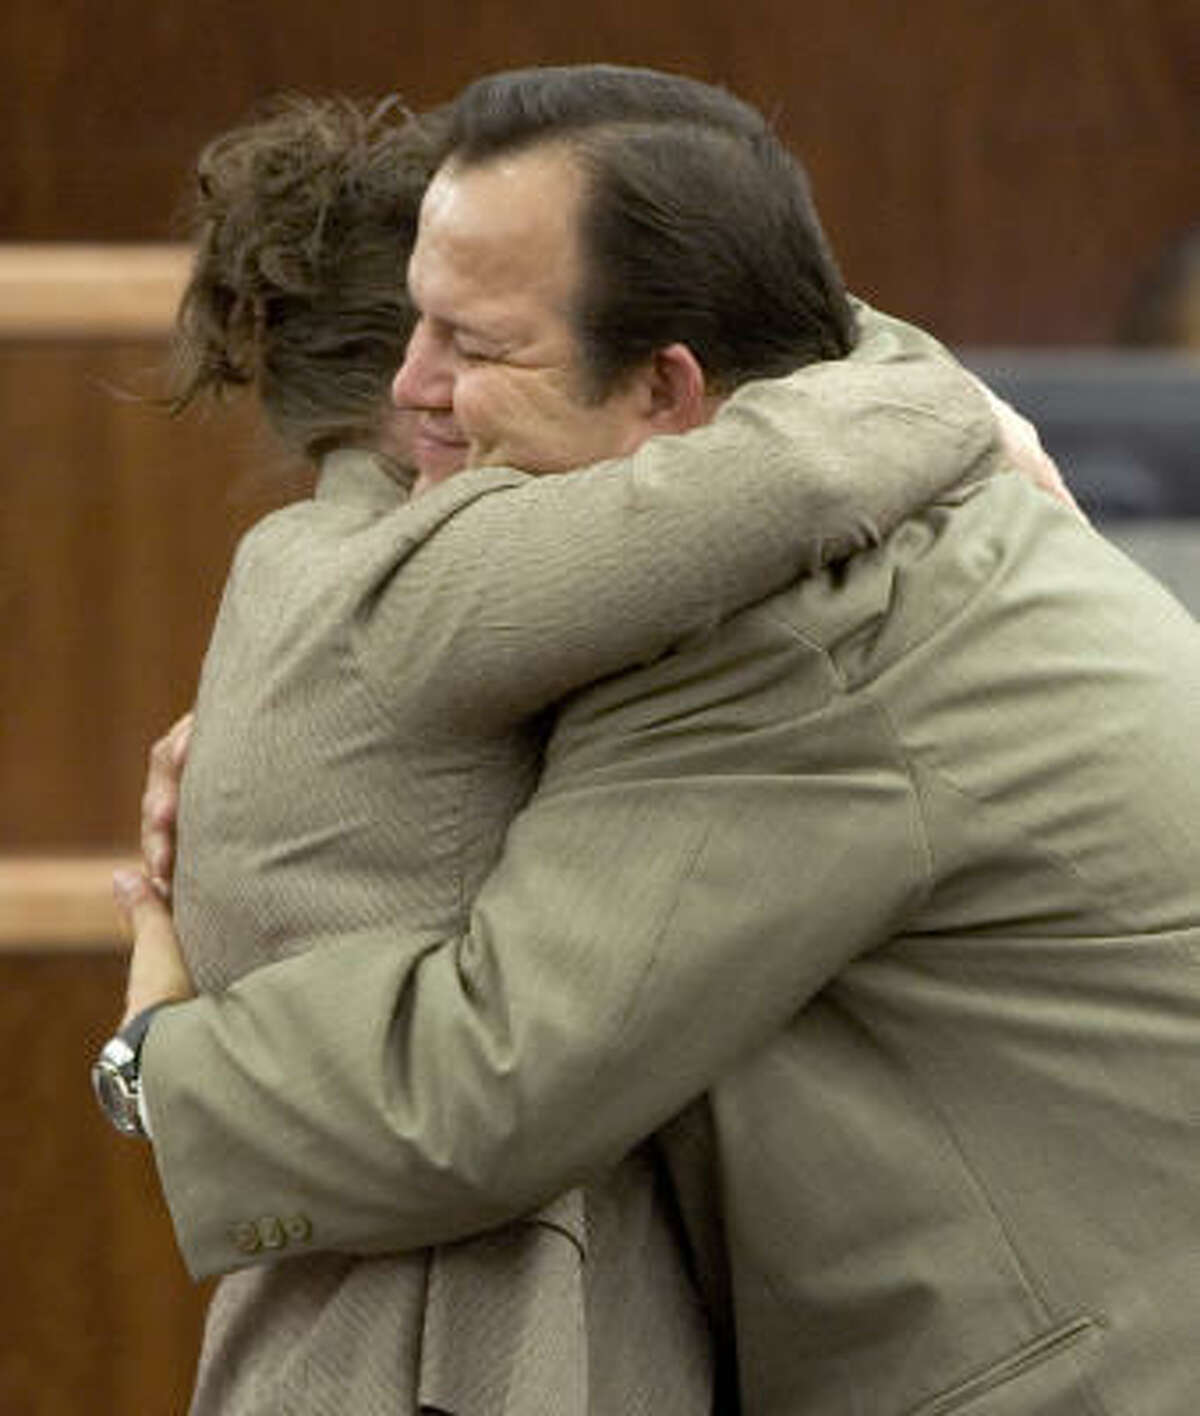 Former Pasadena school bus driver Jerry Cook embraces his wife Annette after he was found not guilty of manslaughter charges Thursday. Prosecutors alleged Cook caused the death of nine-year-old Ruth Young.